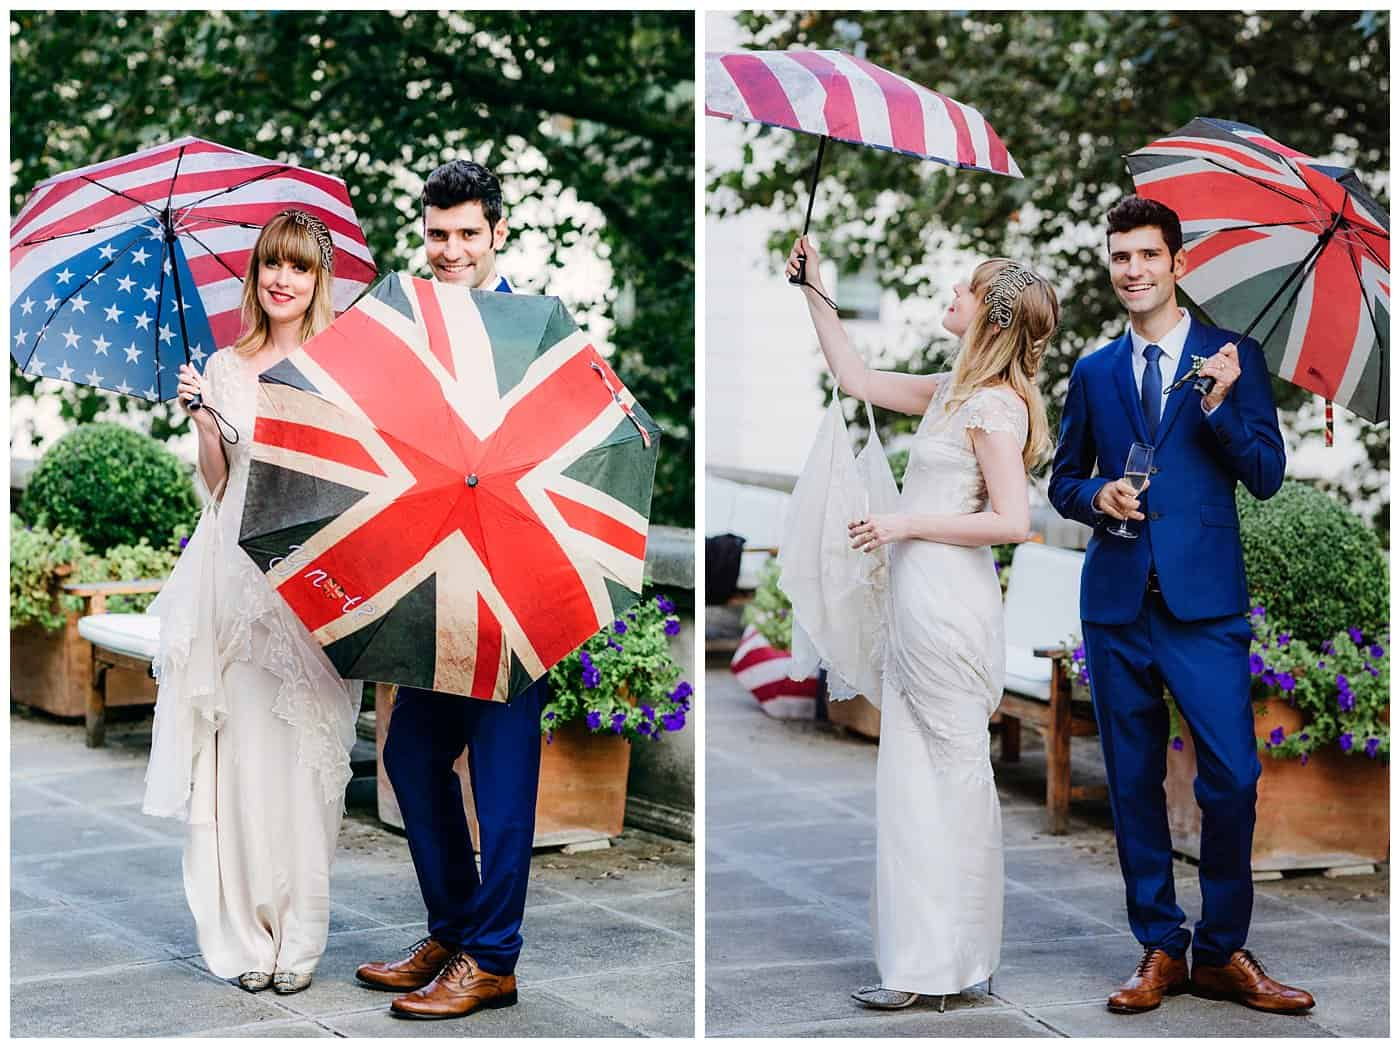 rac club informal wedding photographers